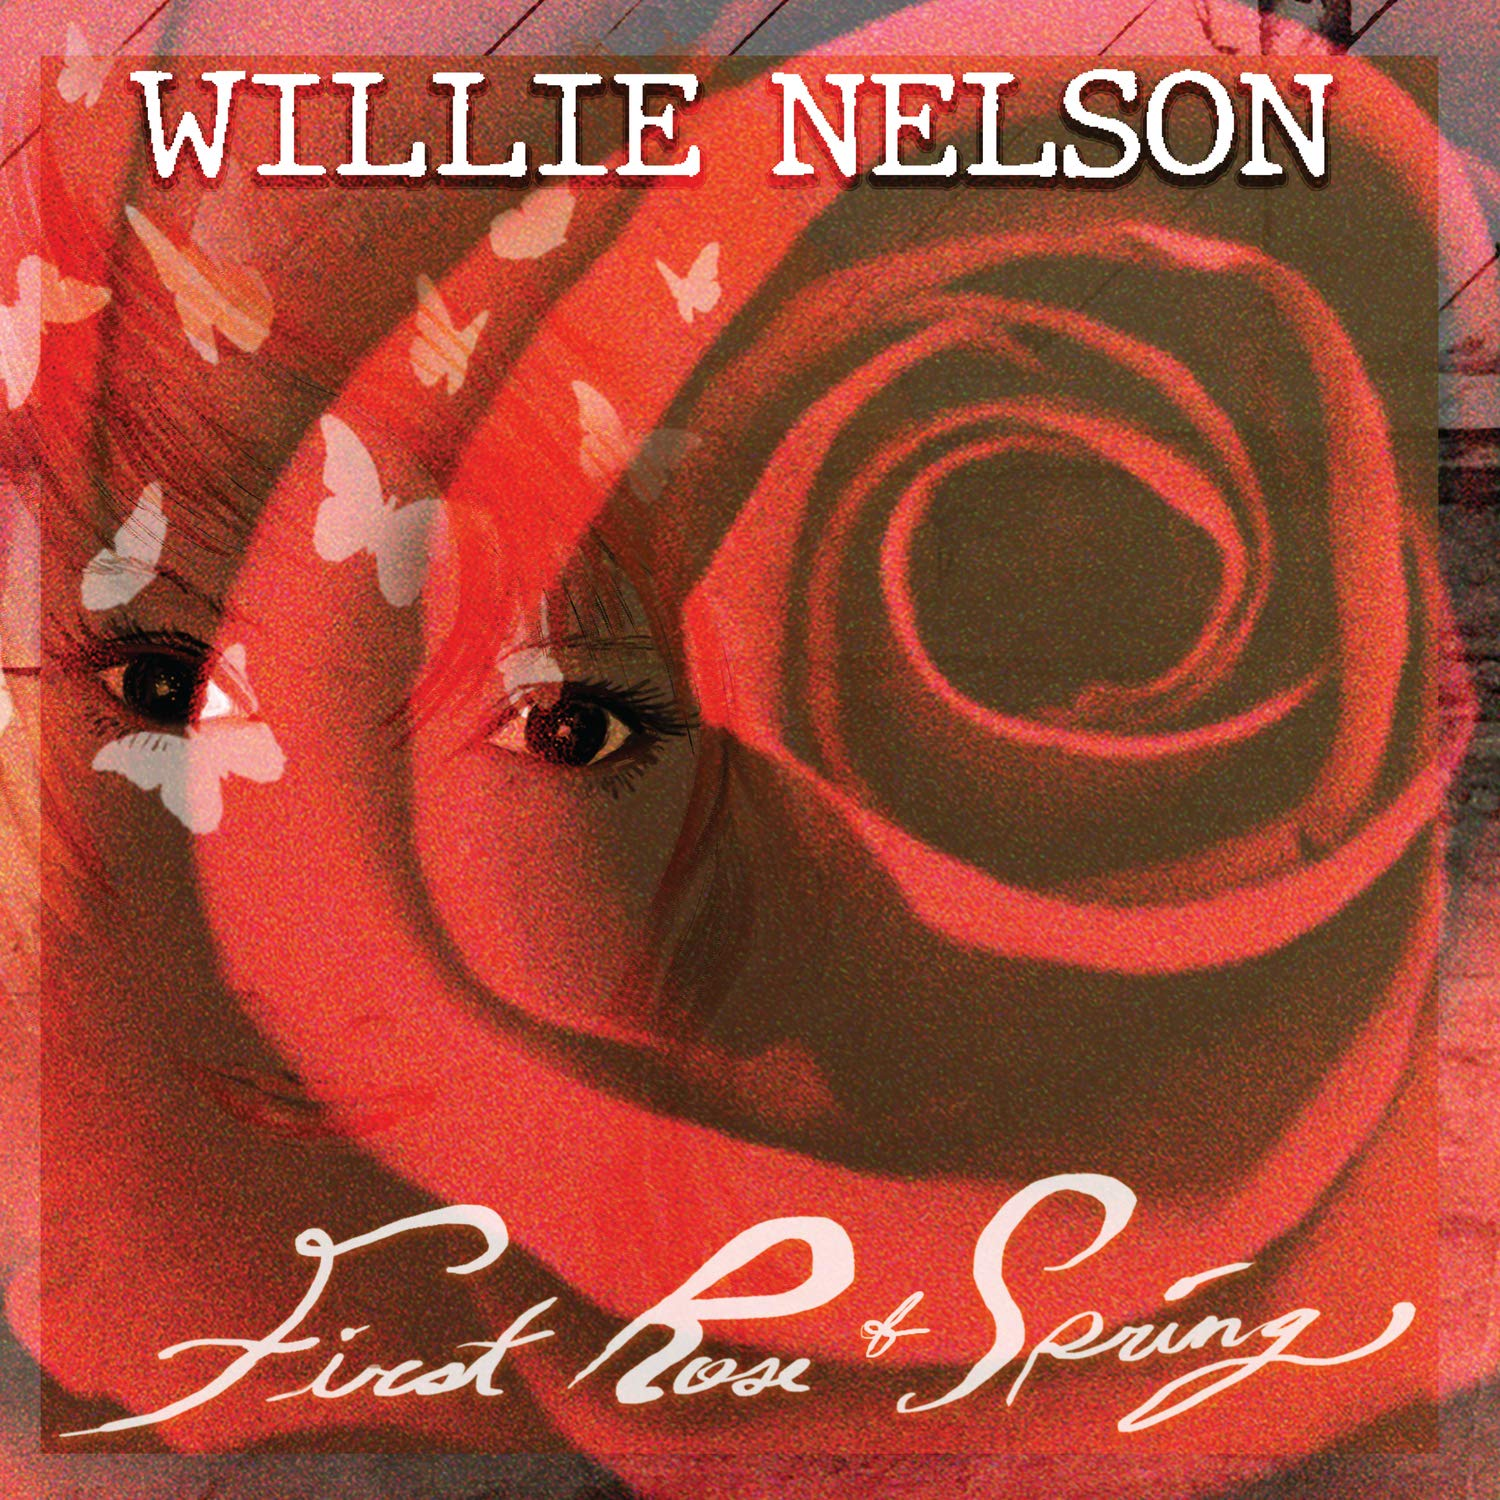 Willie Nelson - First Rose Of Spring (2020) [FLAC] Download